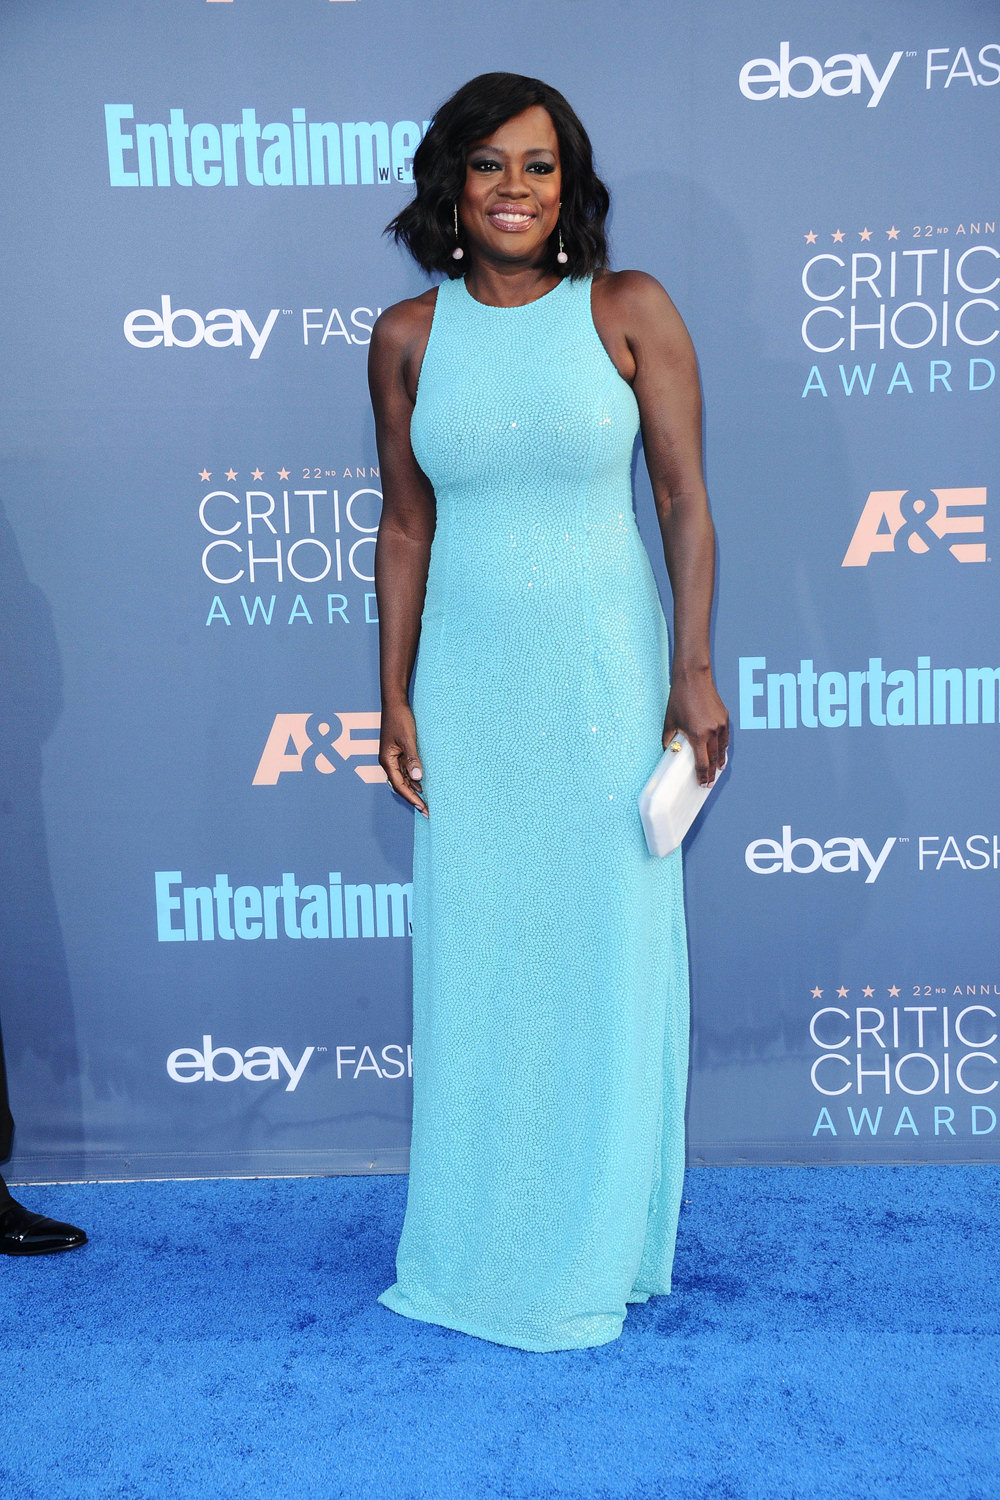 Viola-Davis-Critics-Choice-Awards-2016-Red-Carpet-Fashion-Michael-Kors-Collection-Tom-Lorenzo-Site-1.jpg